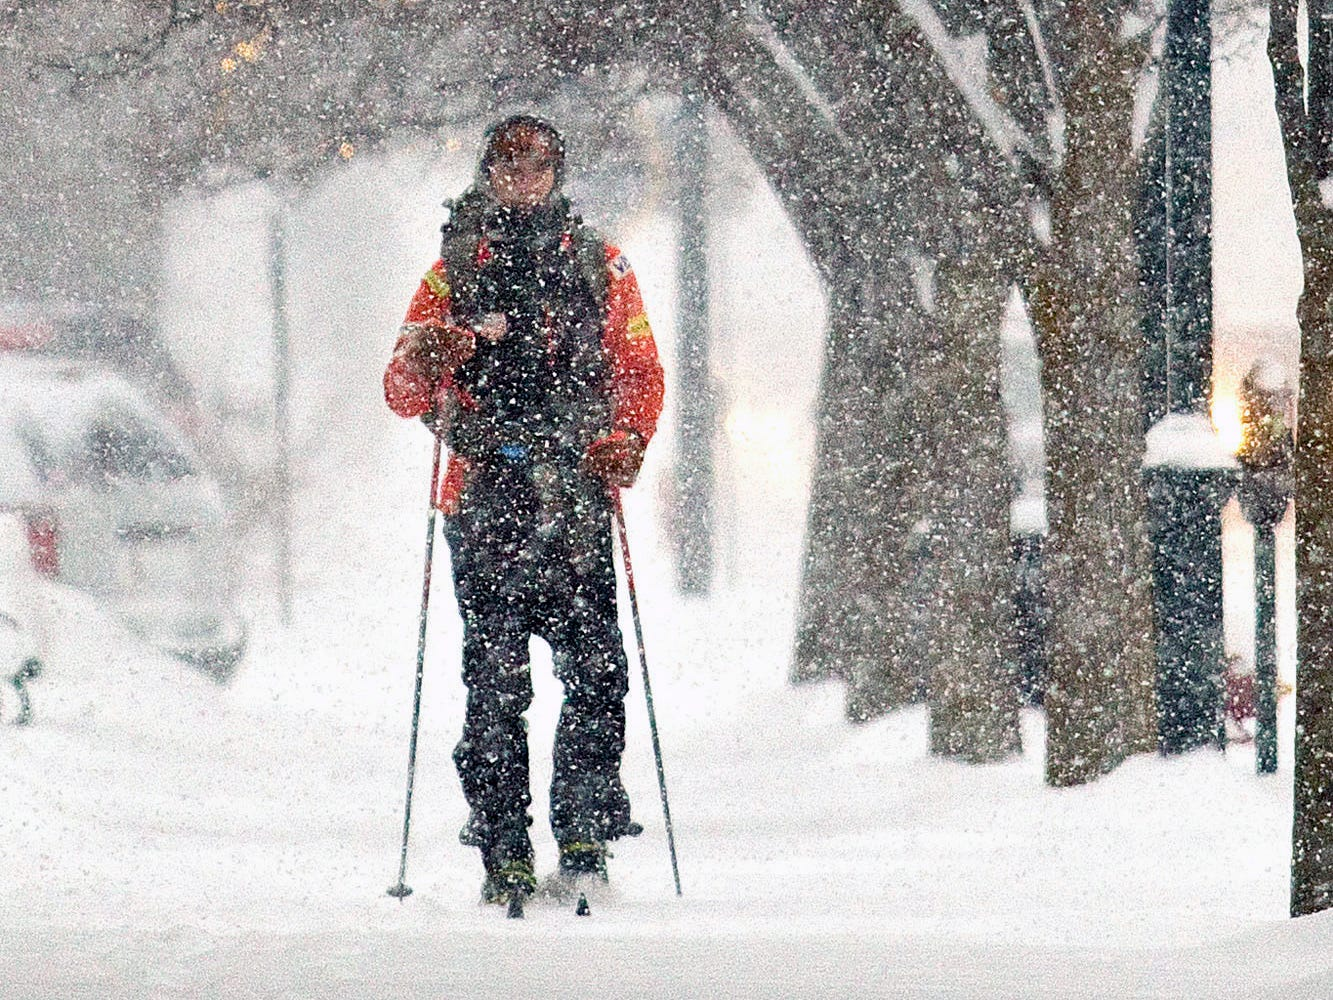 Mike Powers cross country skis to work in downtown Traverse City, Monday.